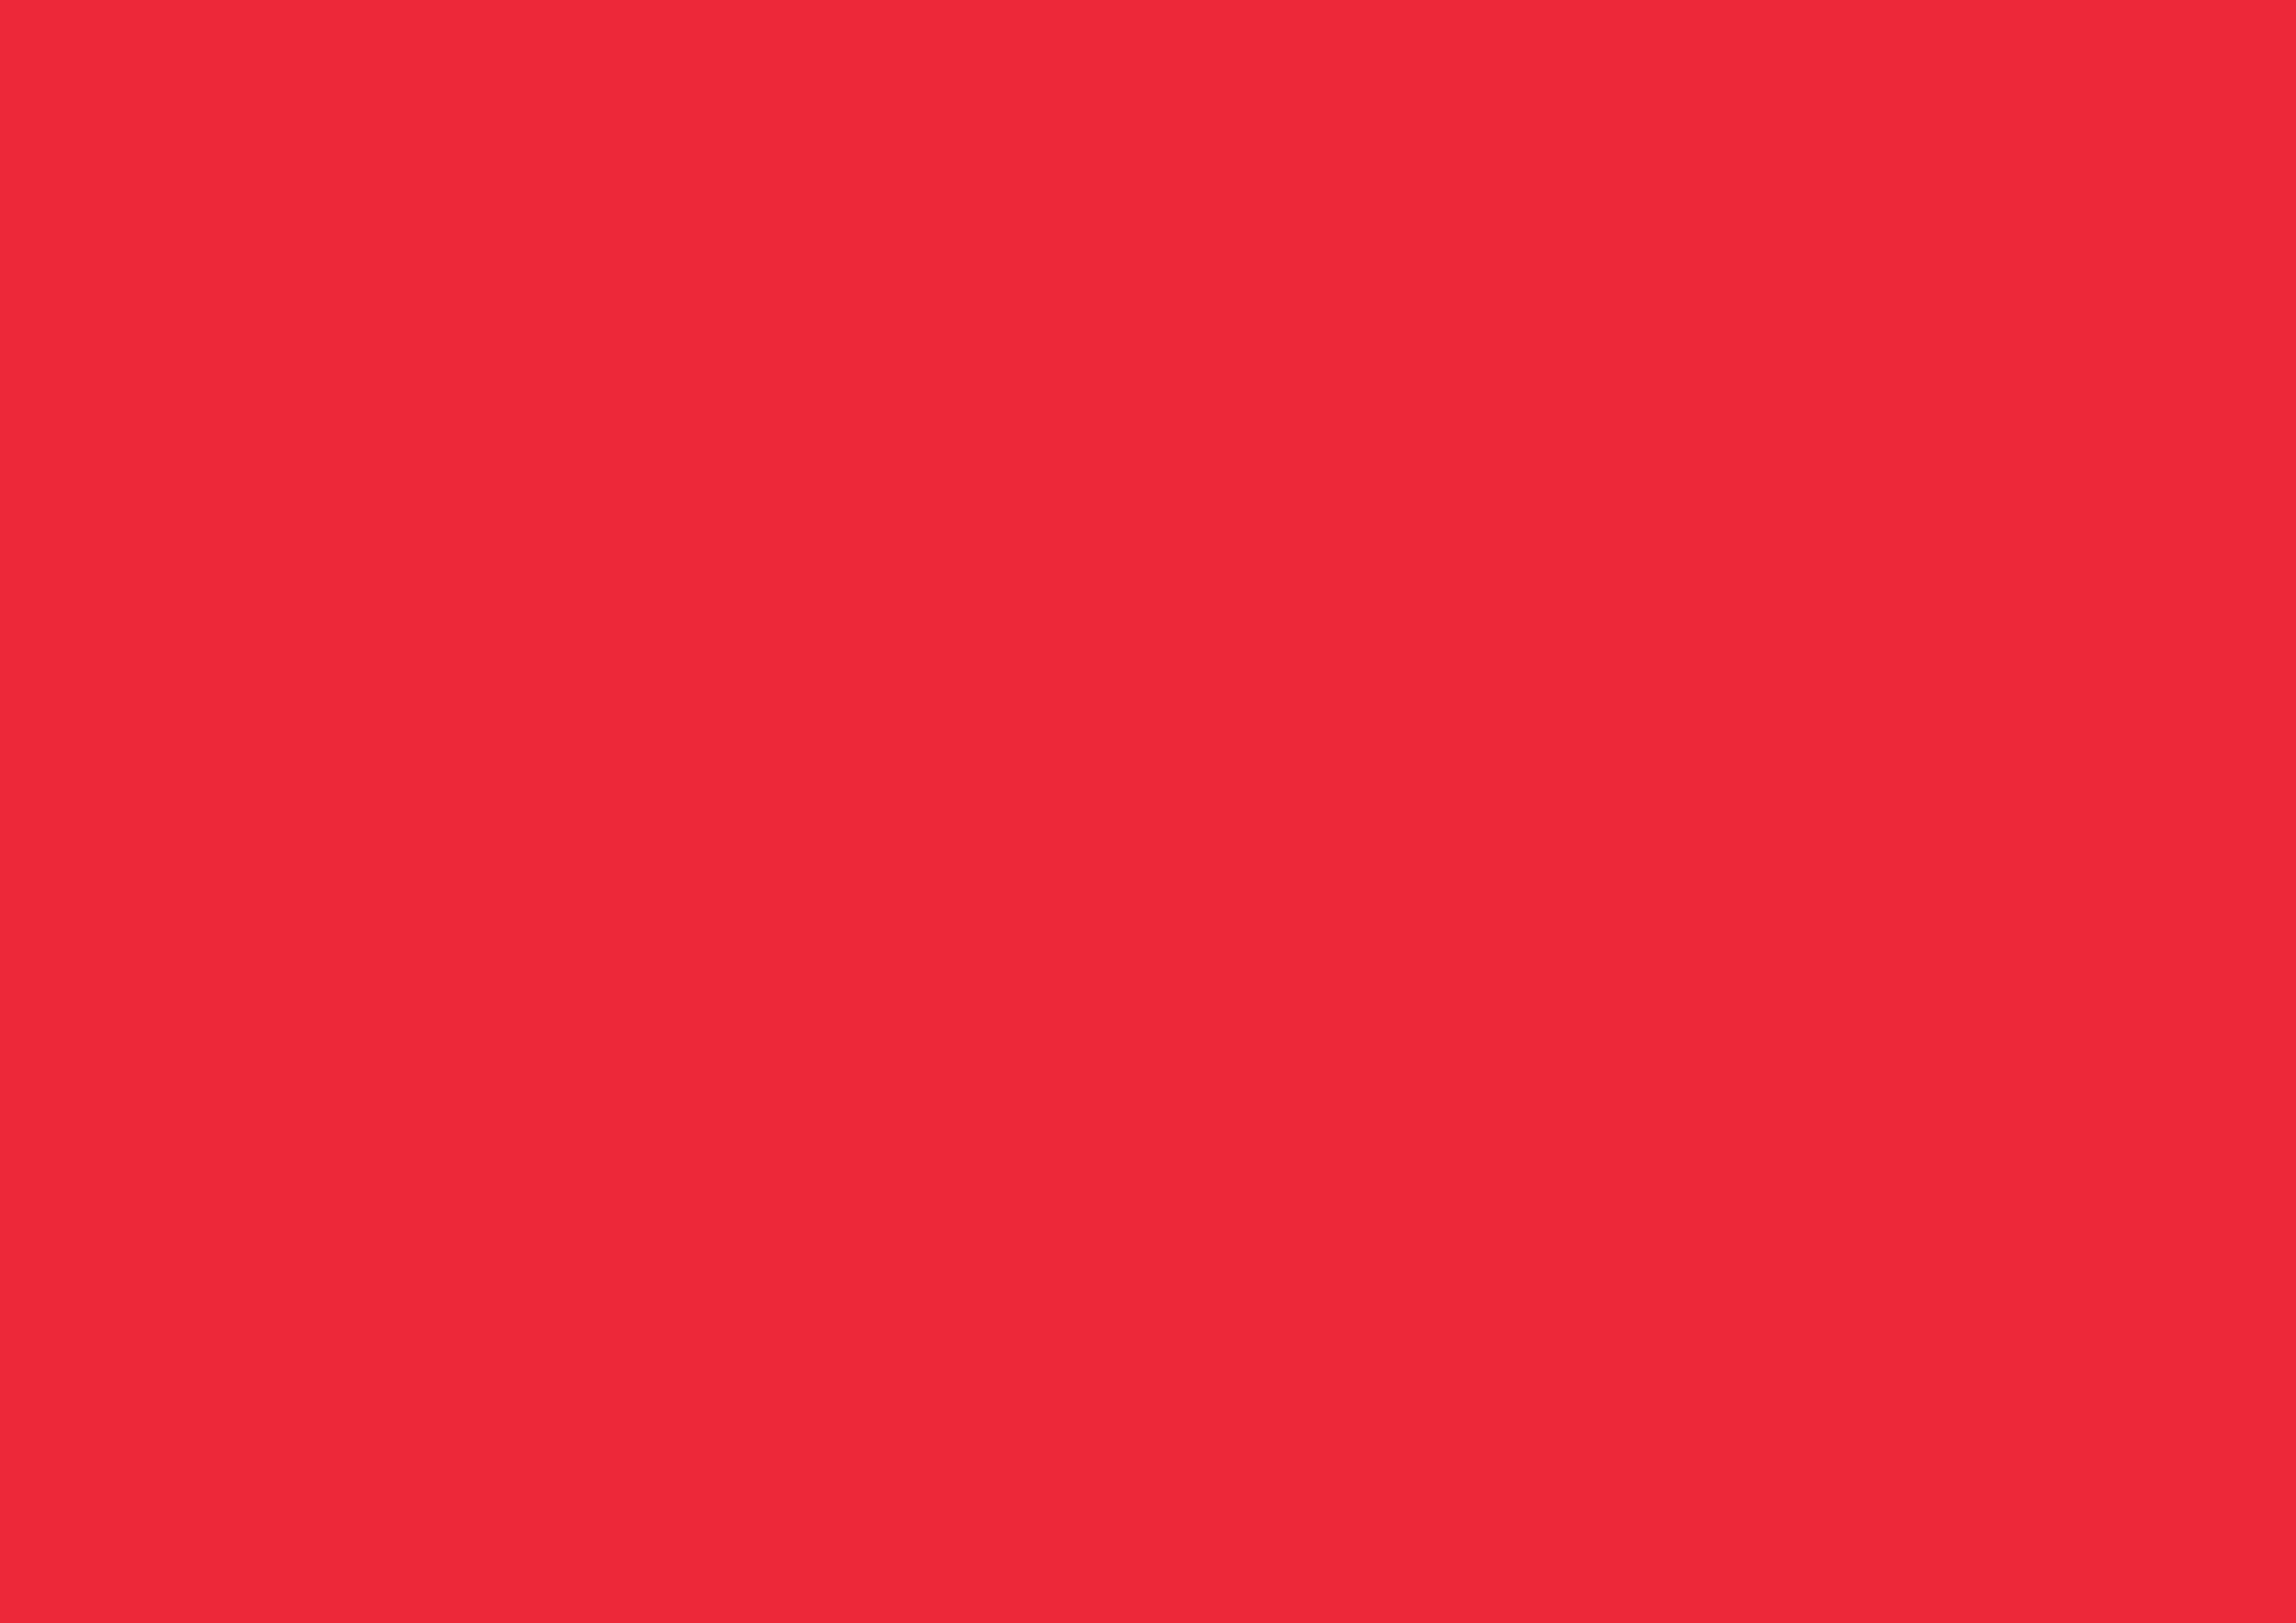 3508x2480 Imperial Red Solid Color Background